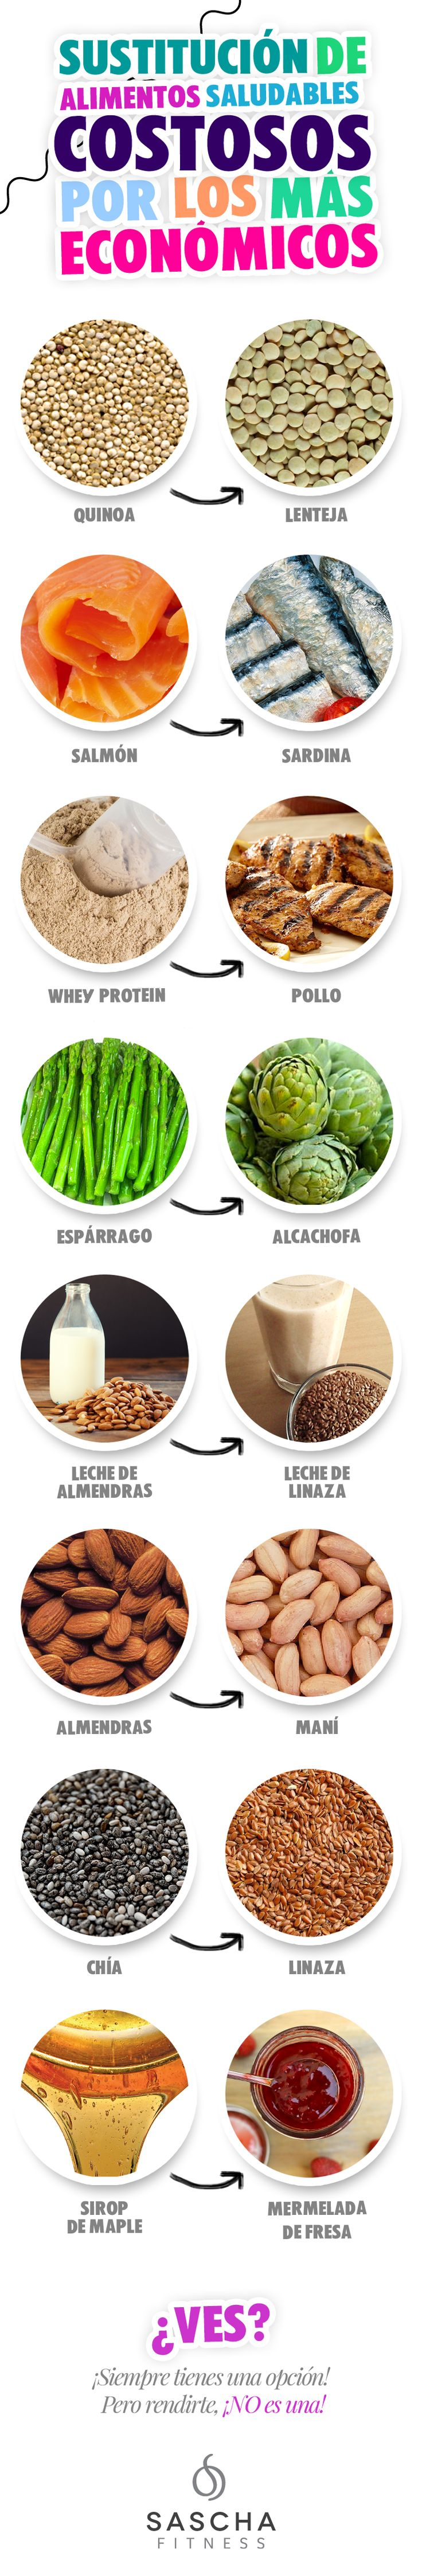 Alimentos saludables costosos por económicos